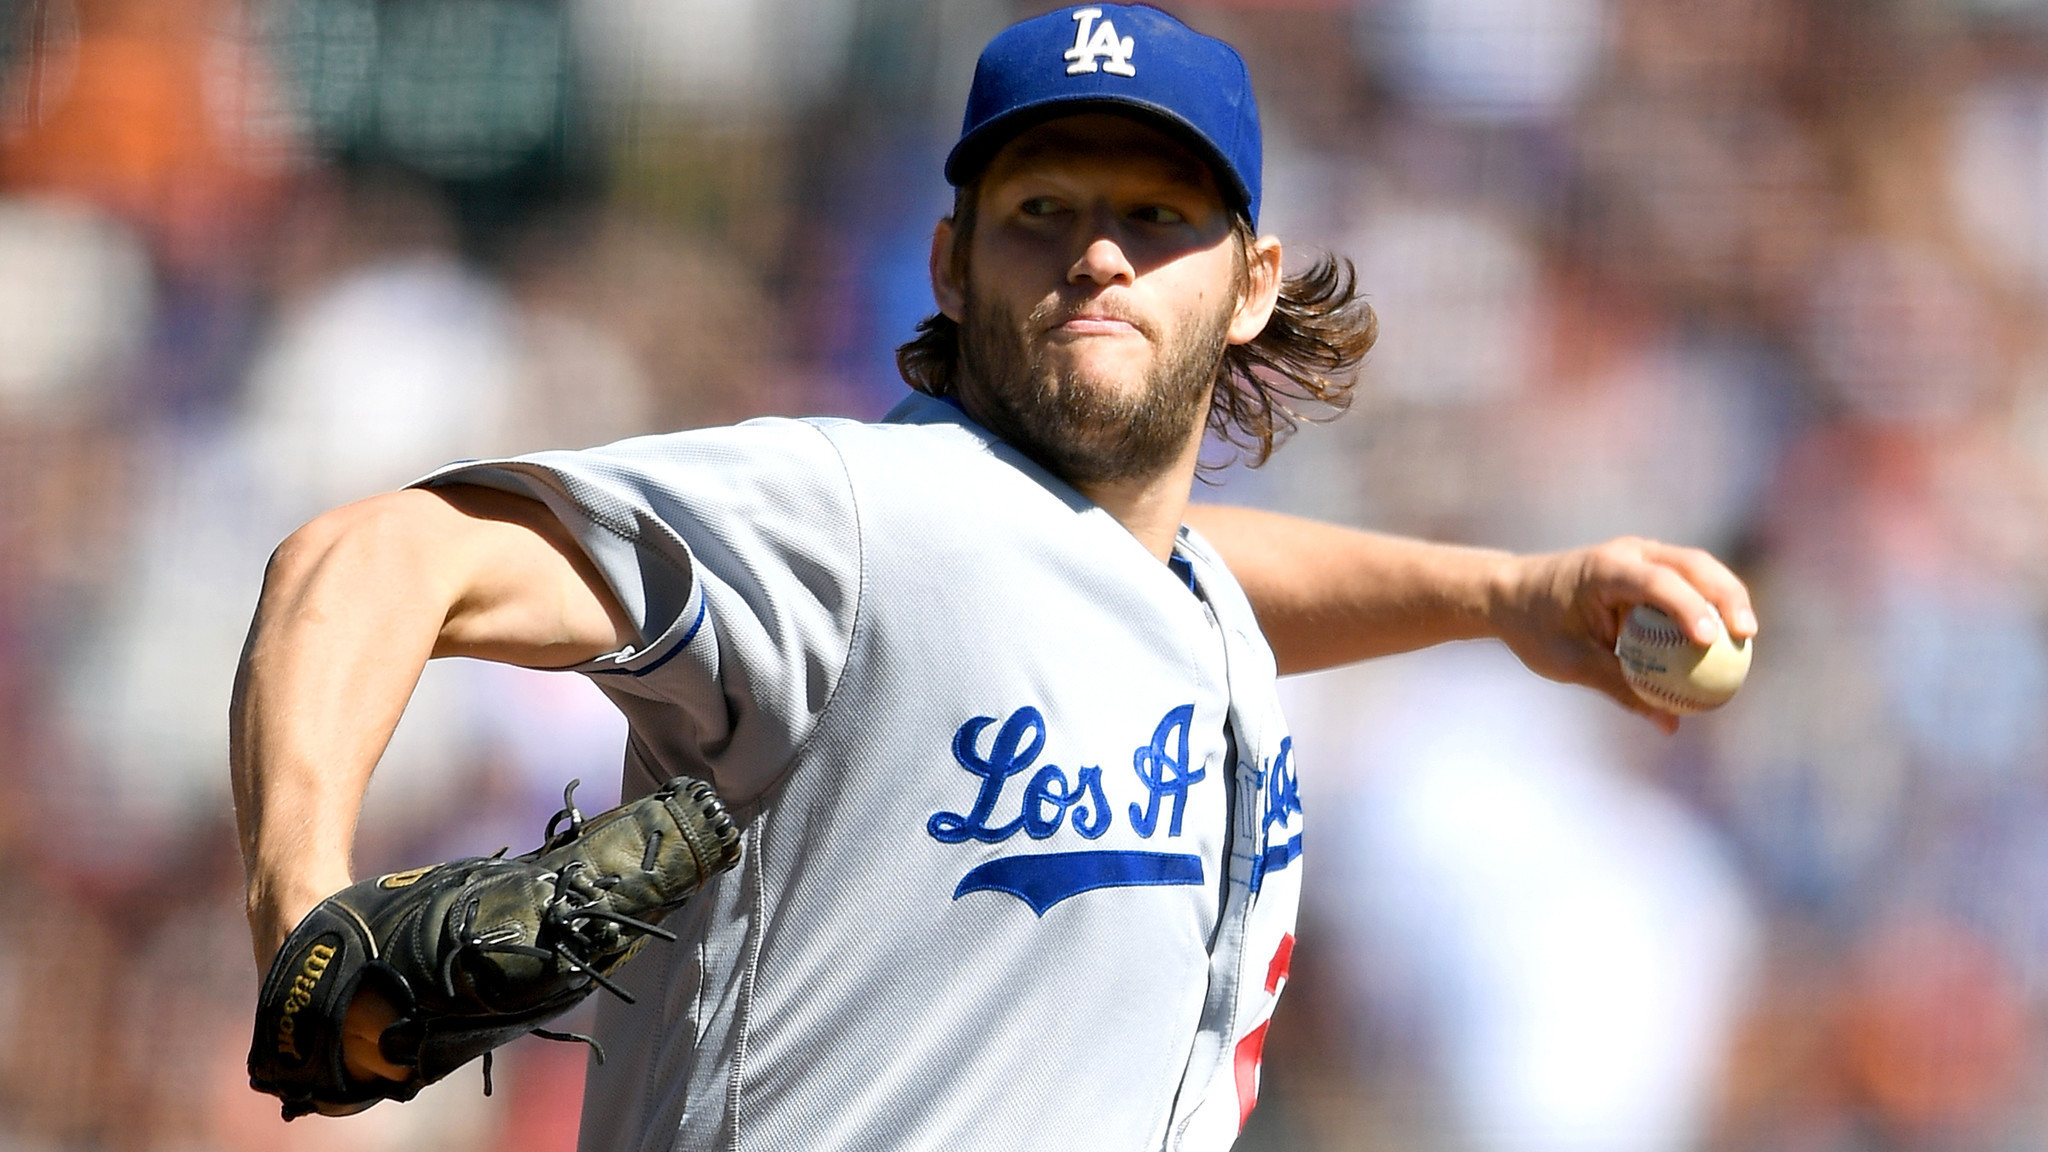 Clayton Kershaw will start for the Dodgers in Game 4 against the Nationals - LA Times